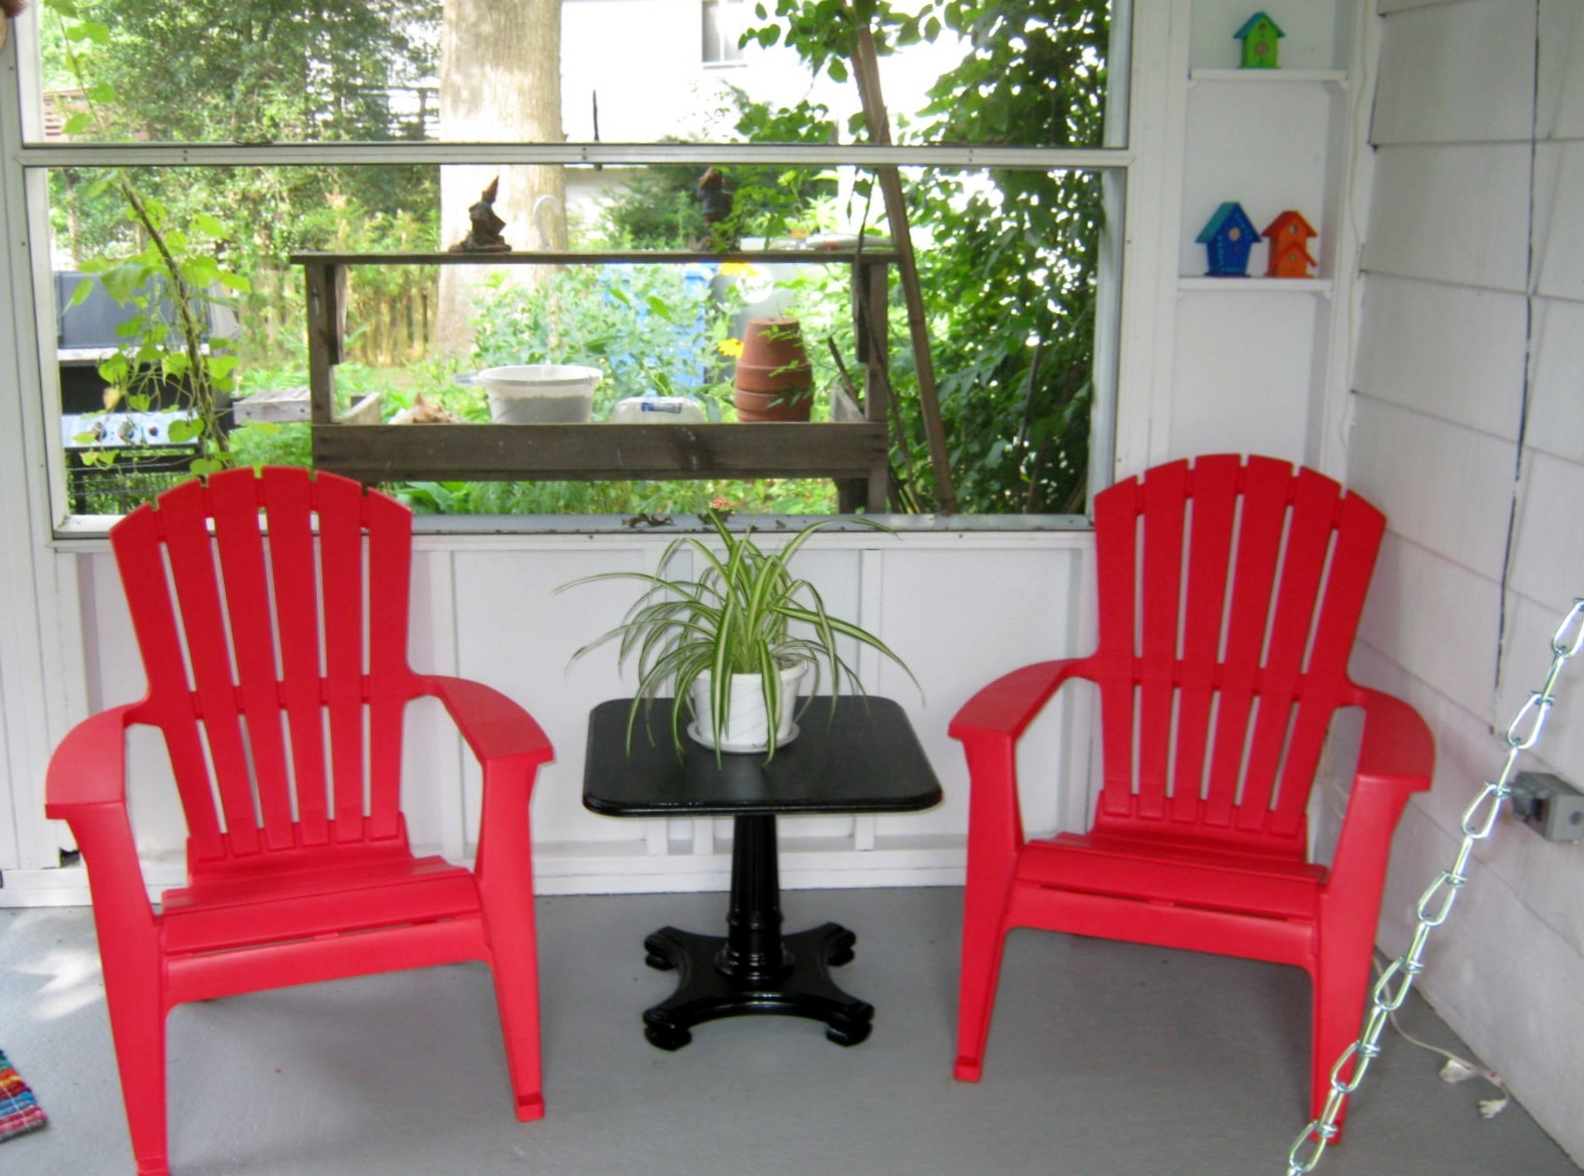 Muskoka Chairs Plastic recycled chairs full jpgRecycled Plastic